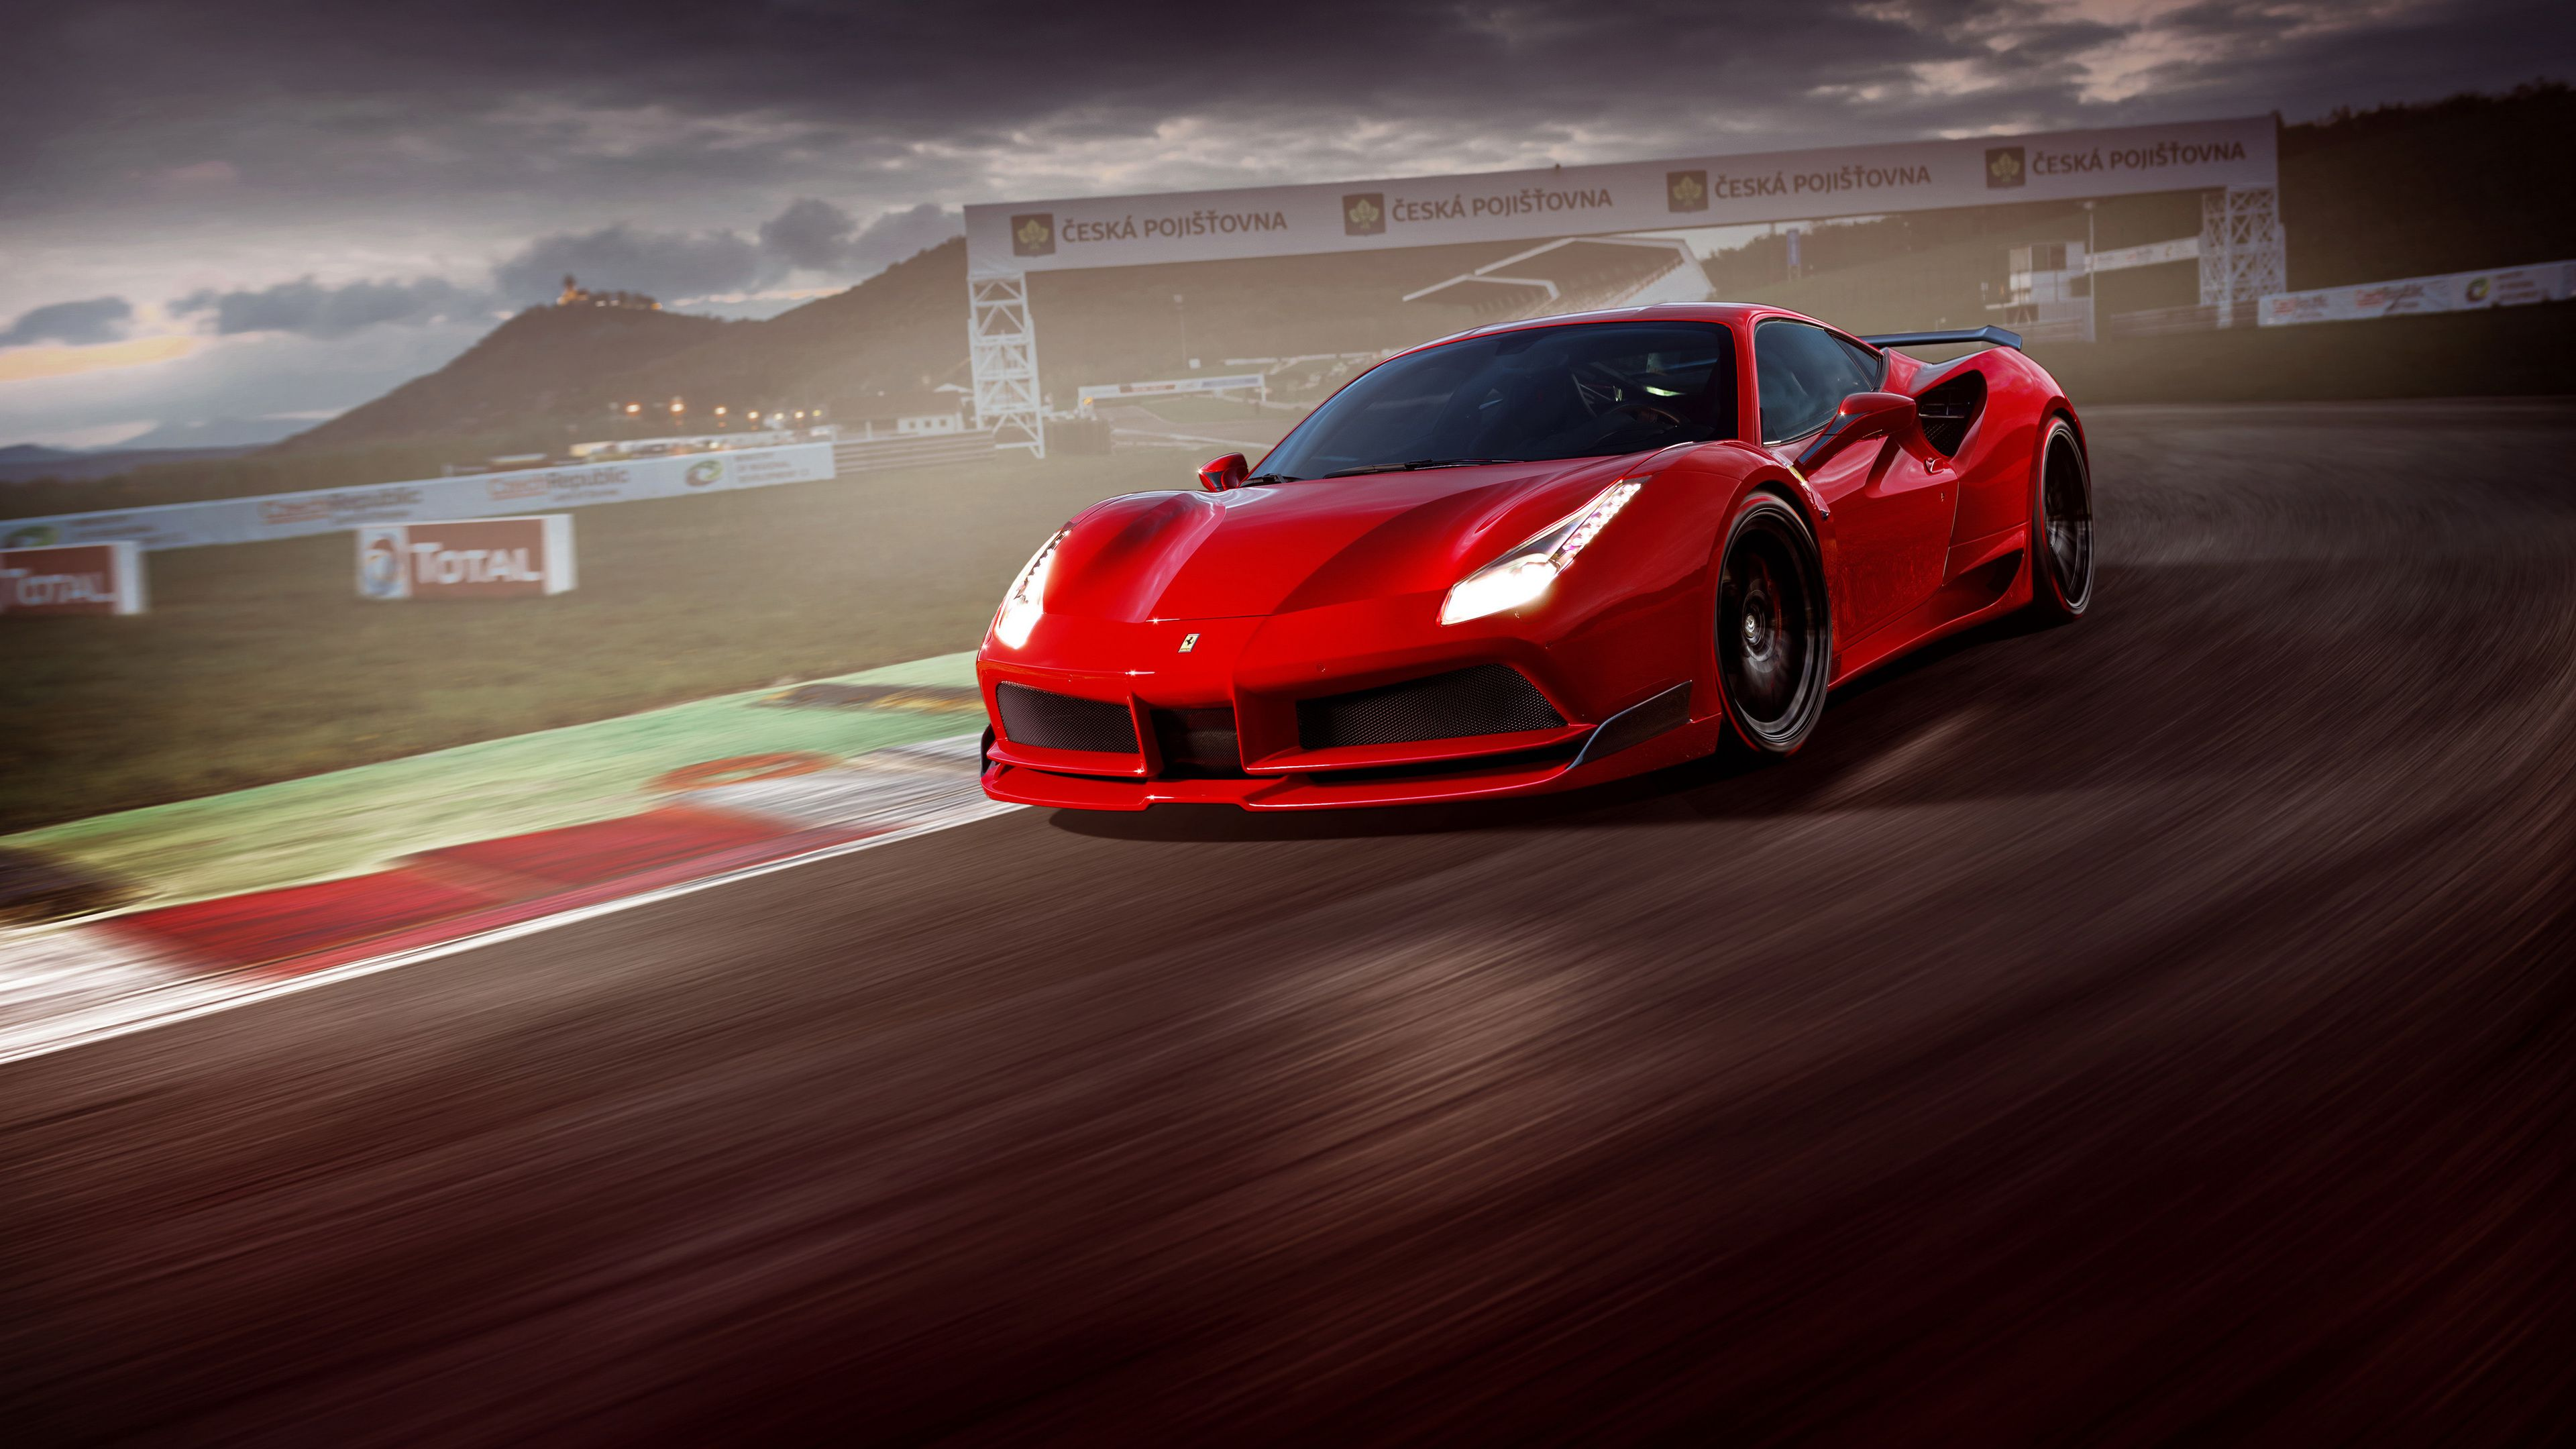 2017 Novitec Rosso Ferrari 488 Gtb Hd Wallpapers Ferrari Wallpapers Ferrari 488 Wallpapers 4k Wallpapers 2017 Cars Wallp Ferrari 488 Car Wallpapers Ferrari